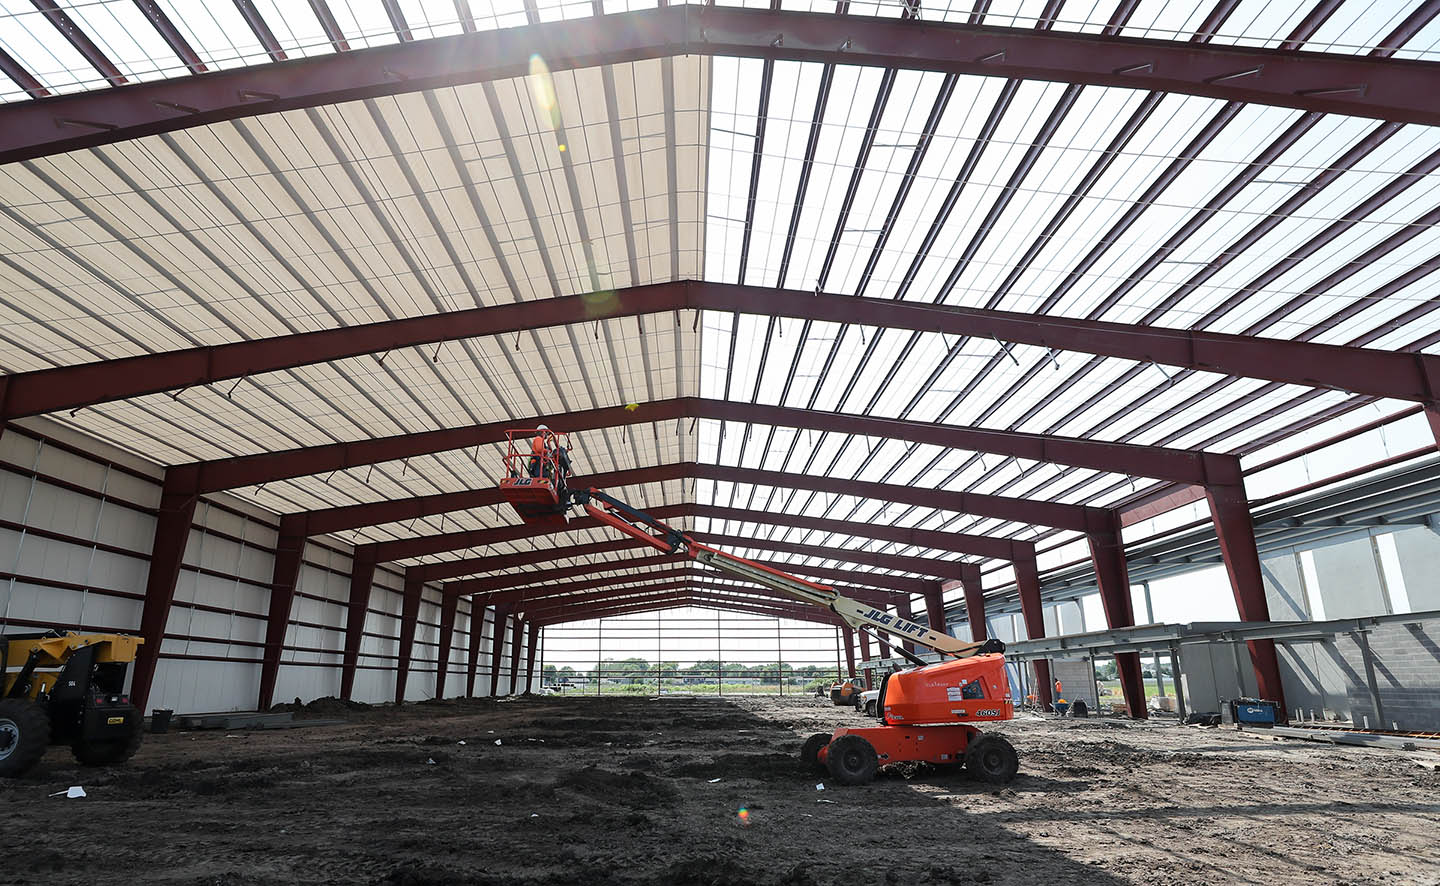 A 62,000-square-foot indoor tennis complex is under construction at UNK's University Village development. (Photos by Erika Pritchard, UNK Communications)